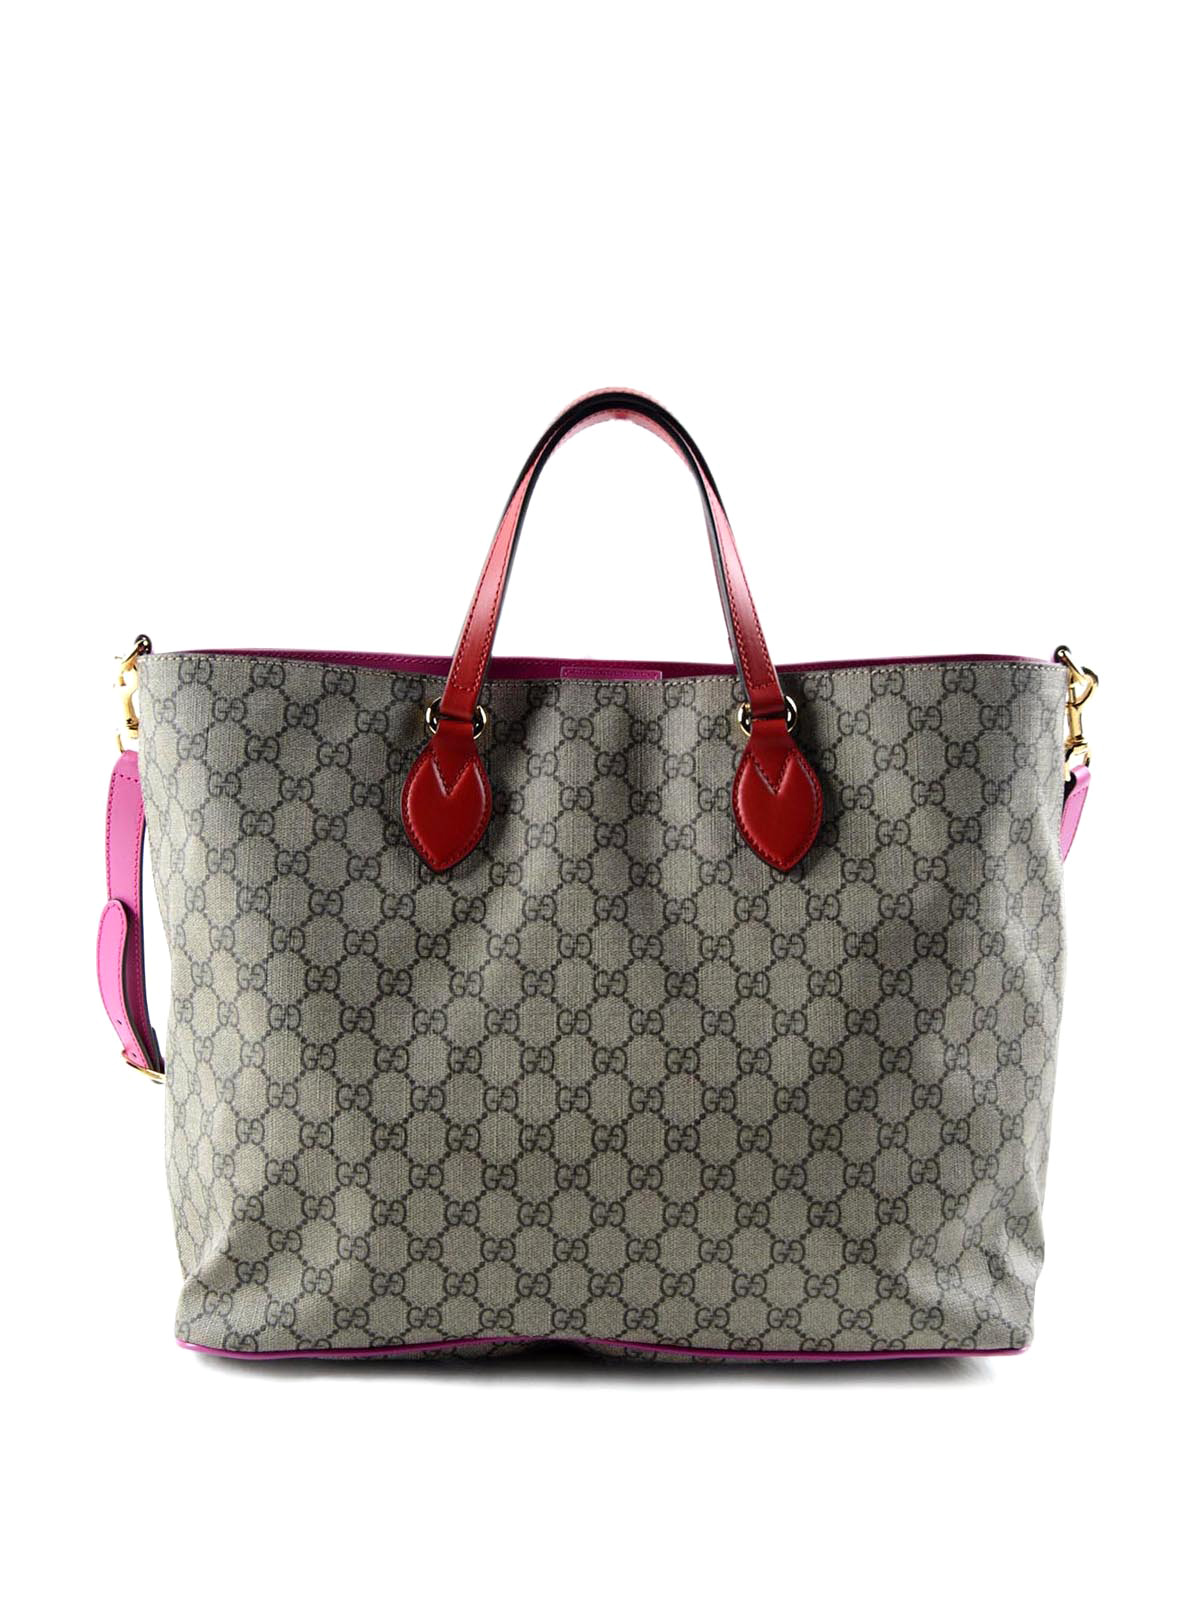 gucci original gg and leather soft tote totes bags 453705 k5i3g 9784. Black Bedroom Furniture Sets. Home Design Ideas